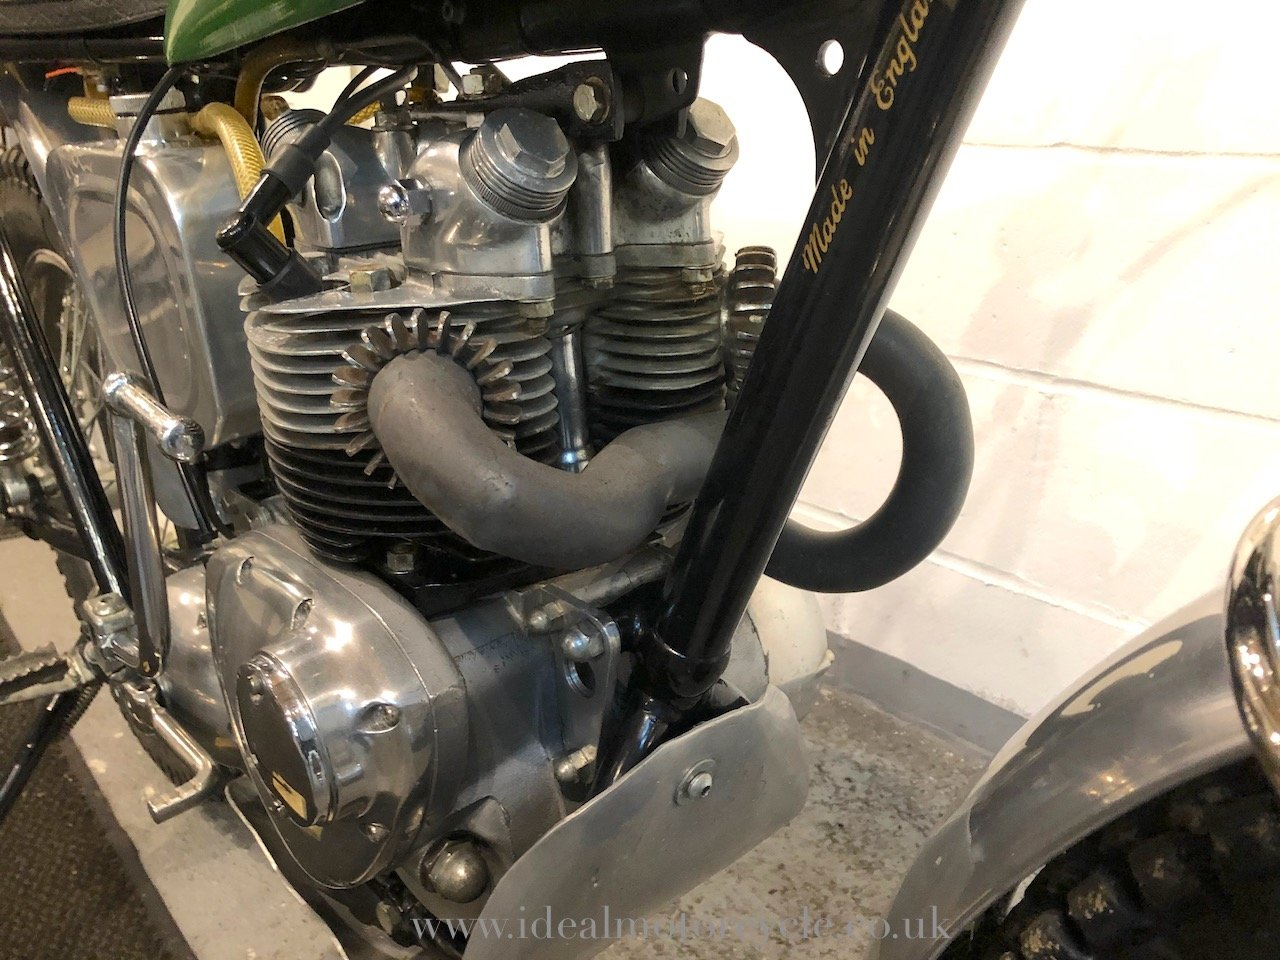 1964 Pre 65 Triumph 350cc Trials For Sale (picture 6 of 6)